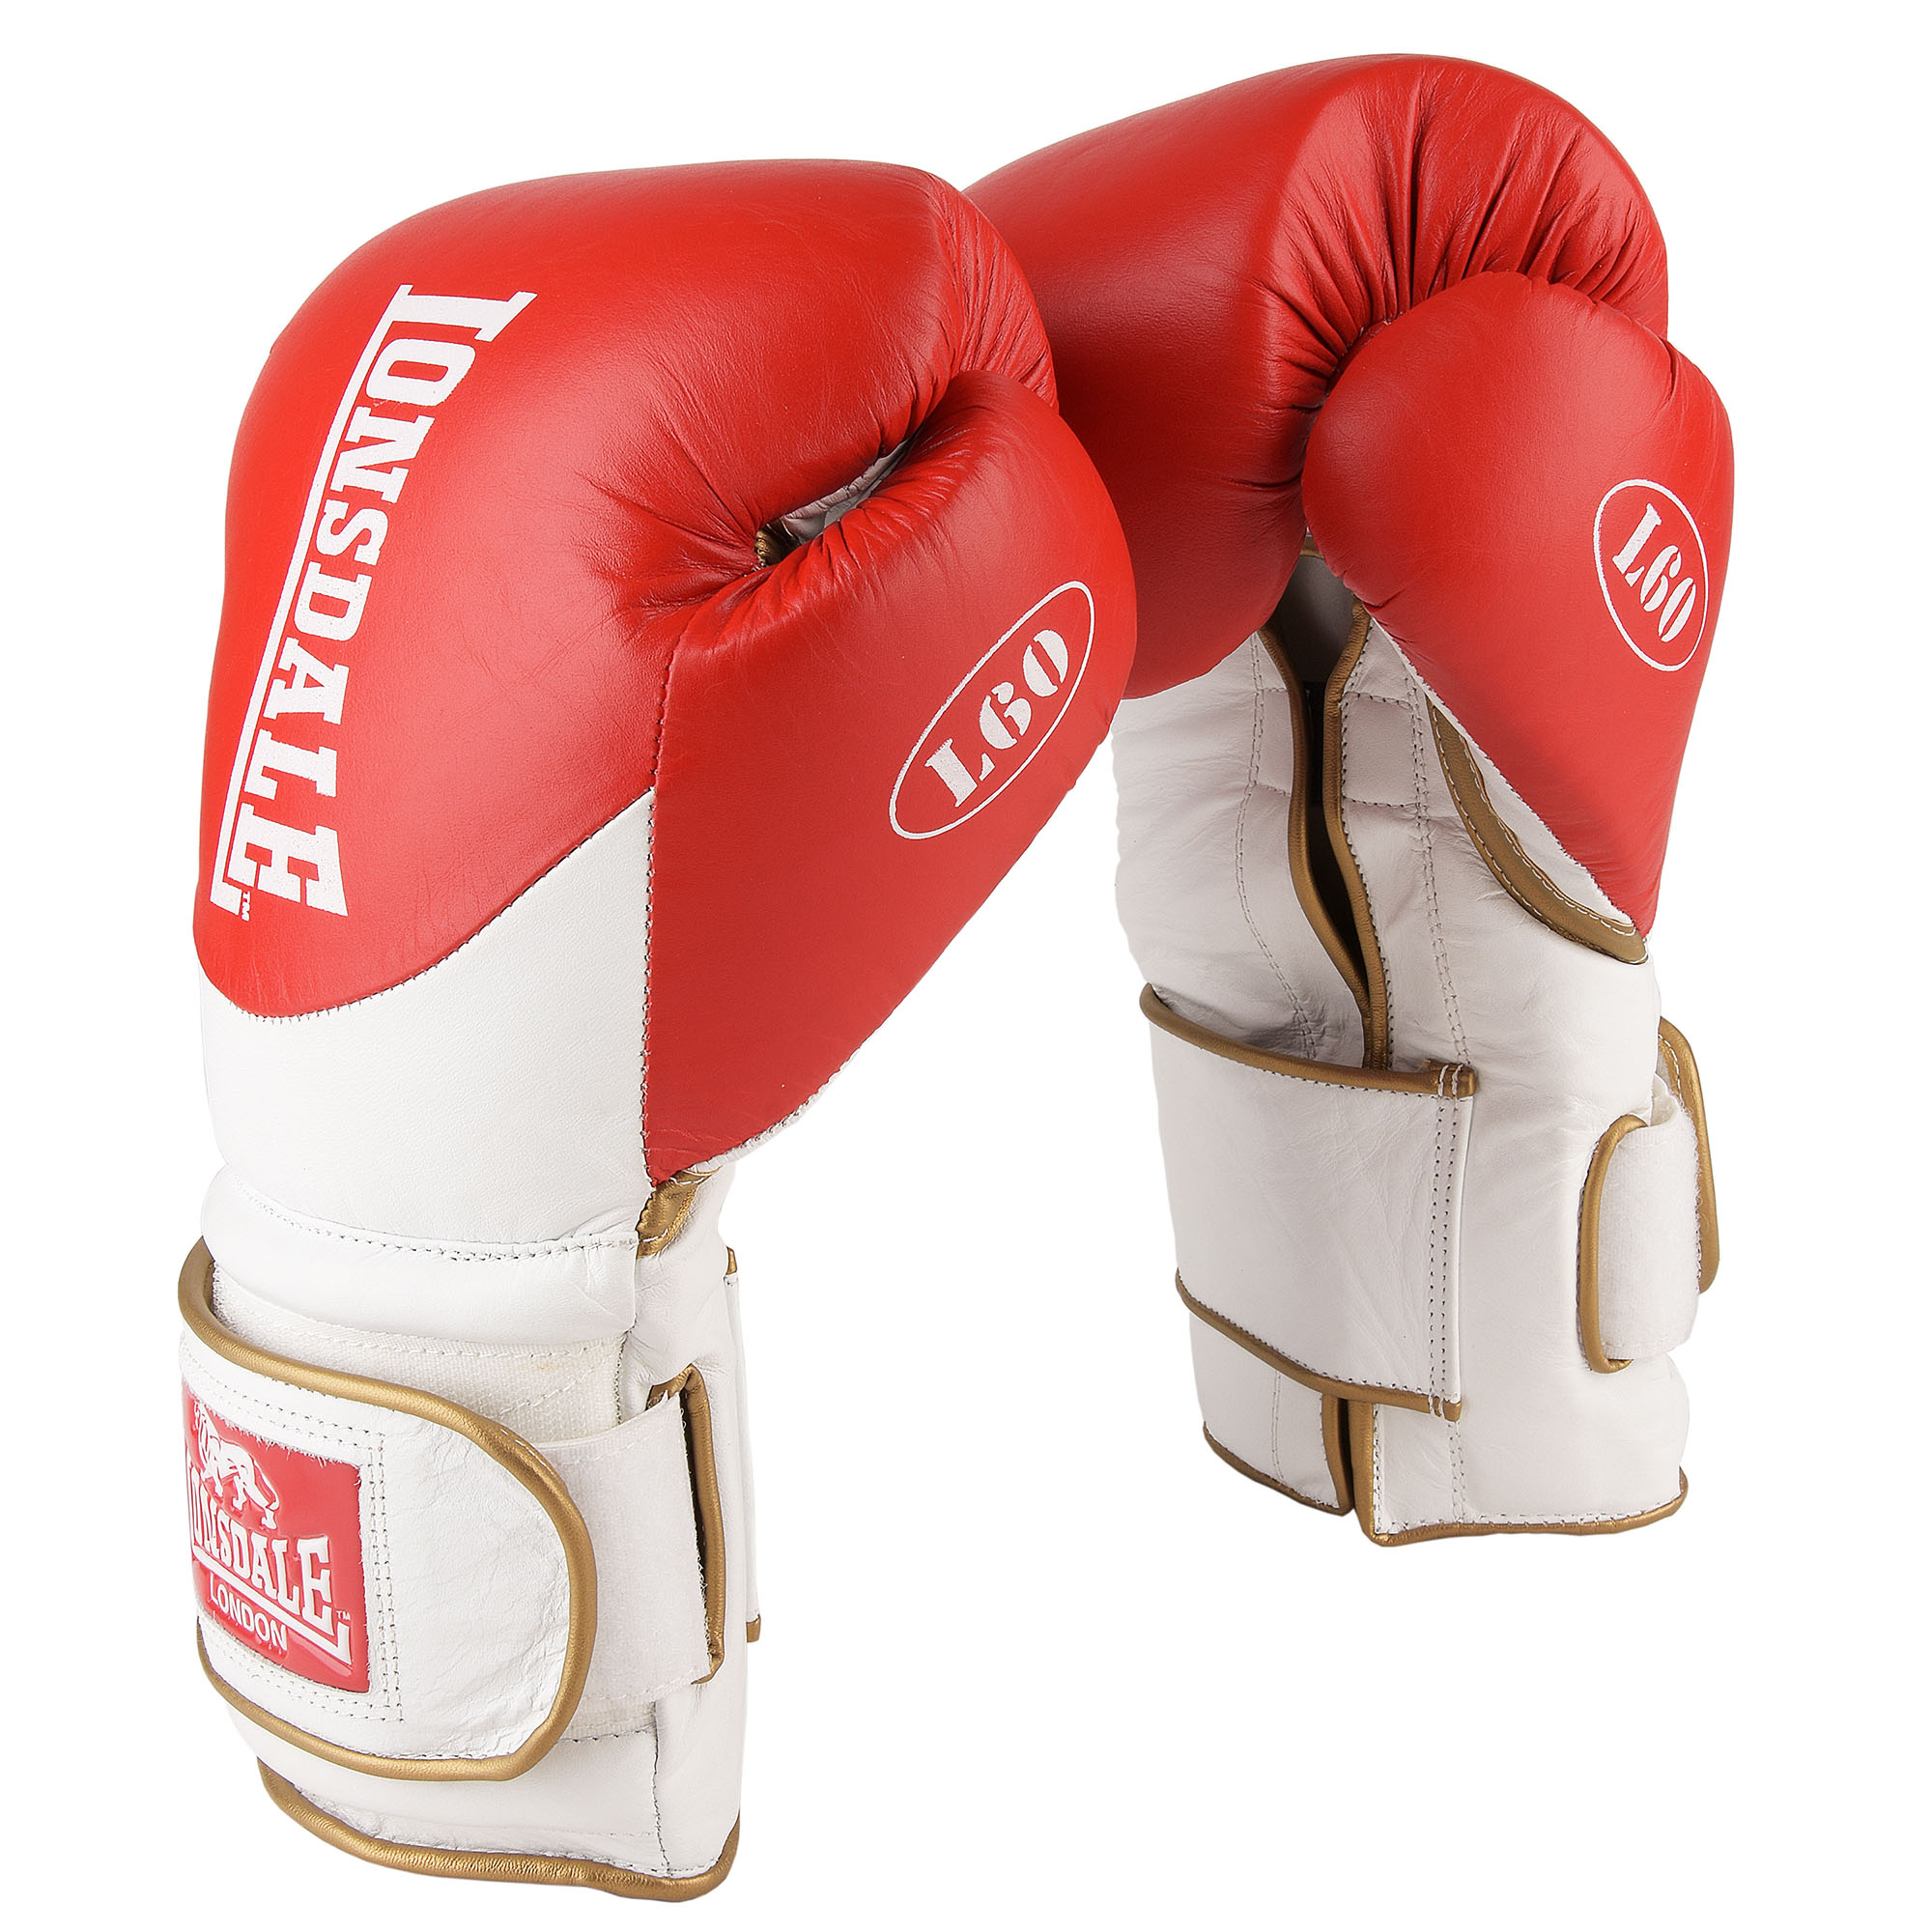 Lonsdale L60 Hook and Loop Leather Training Gloves - Red/White, 16oz